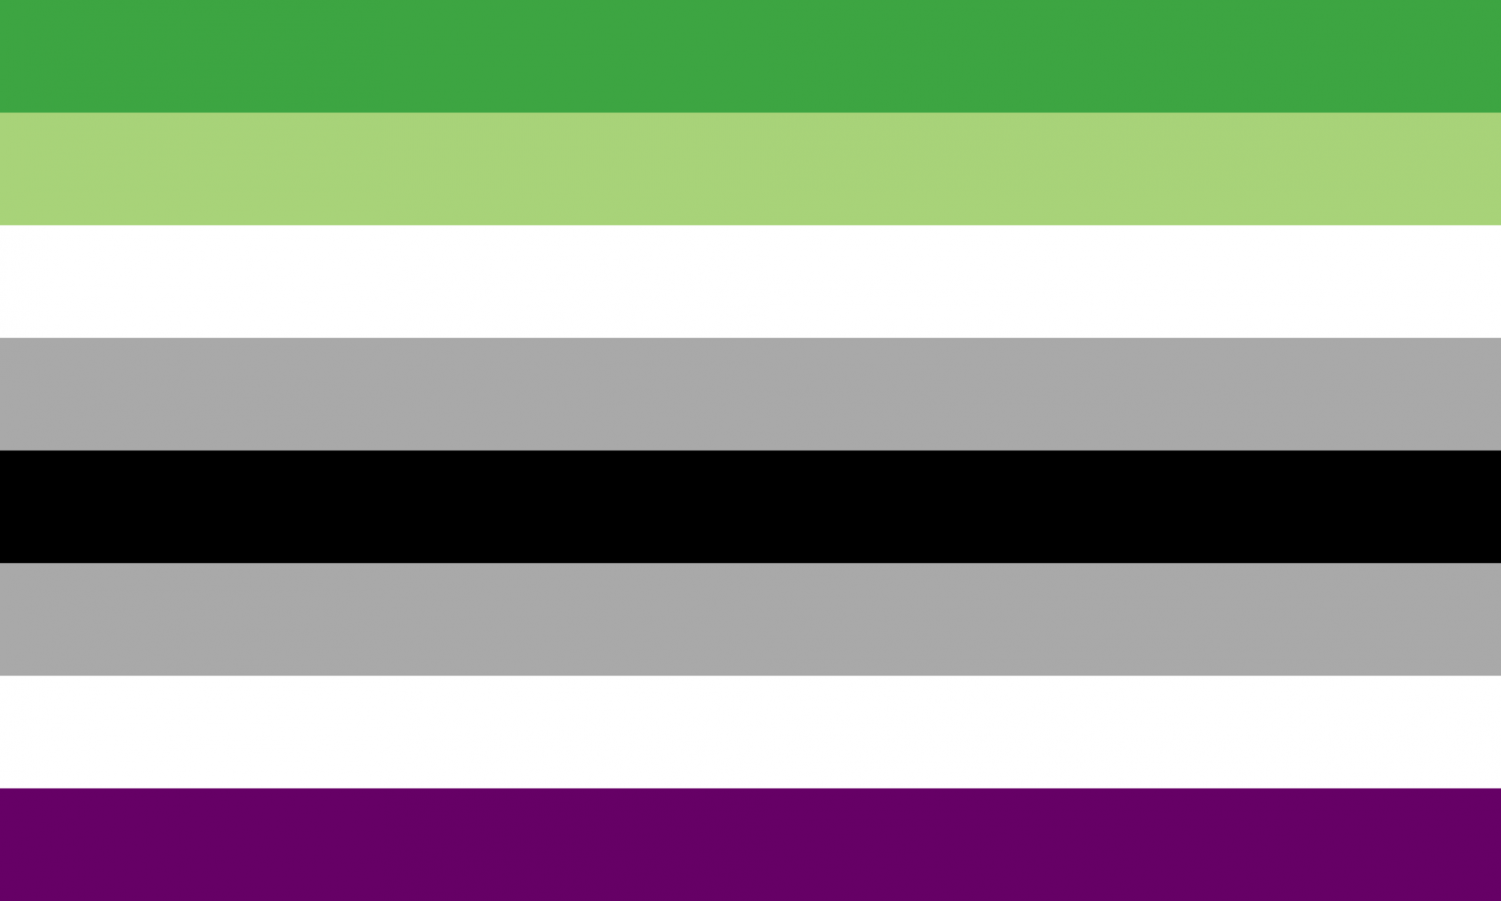 Designed in 2016 by a DeviantArt user, this is one of the many aromantic and asexual flags.  The green stripes represent aromantisim while the purple stand for asexuality.  The white stripes are meant to symbolize inclusion, and the gray demonstrates the spectrum of both asexuality and aromanticism.